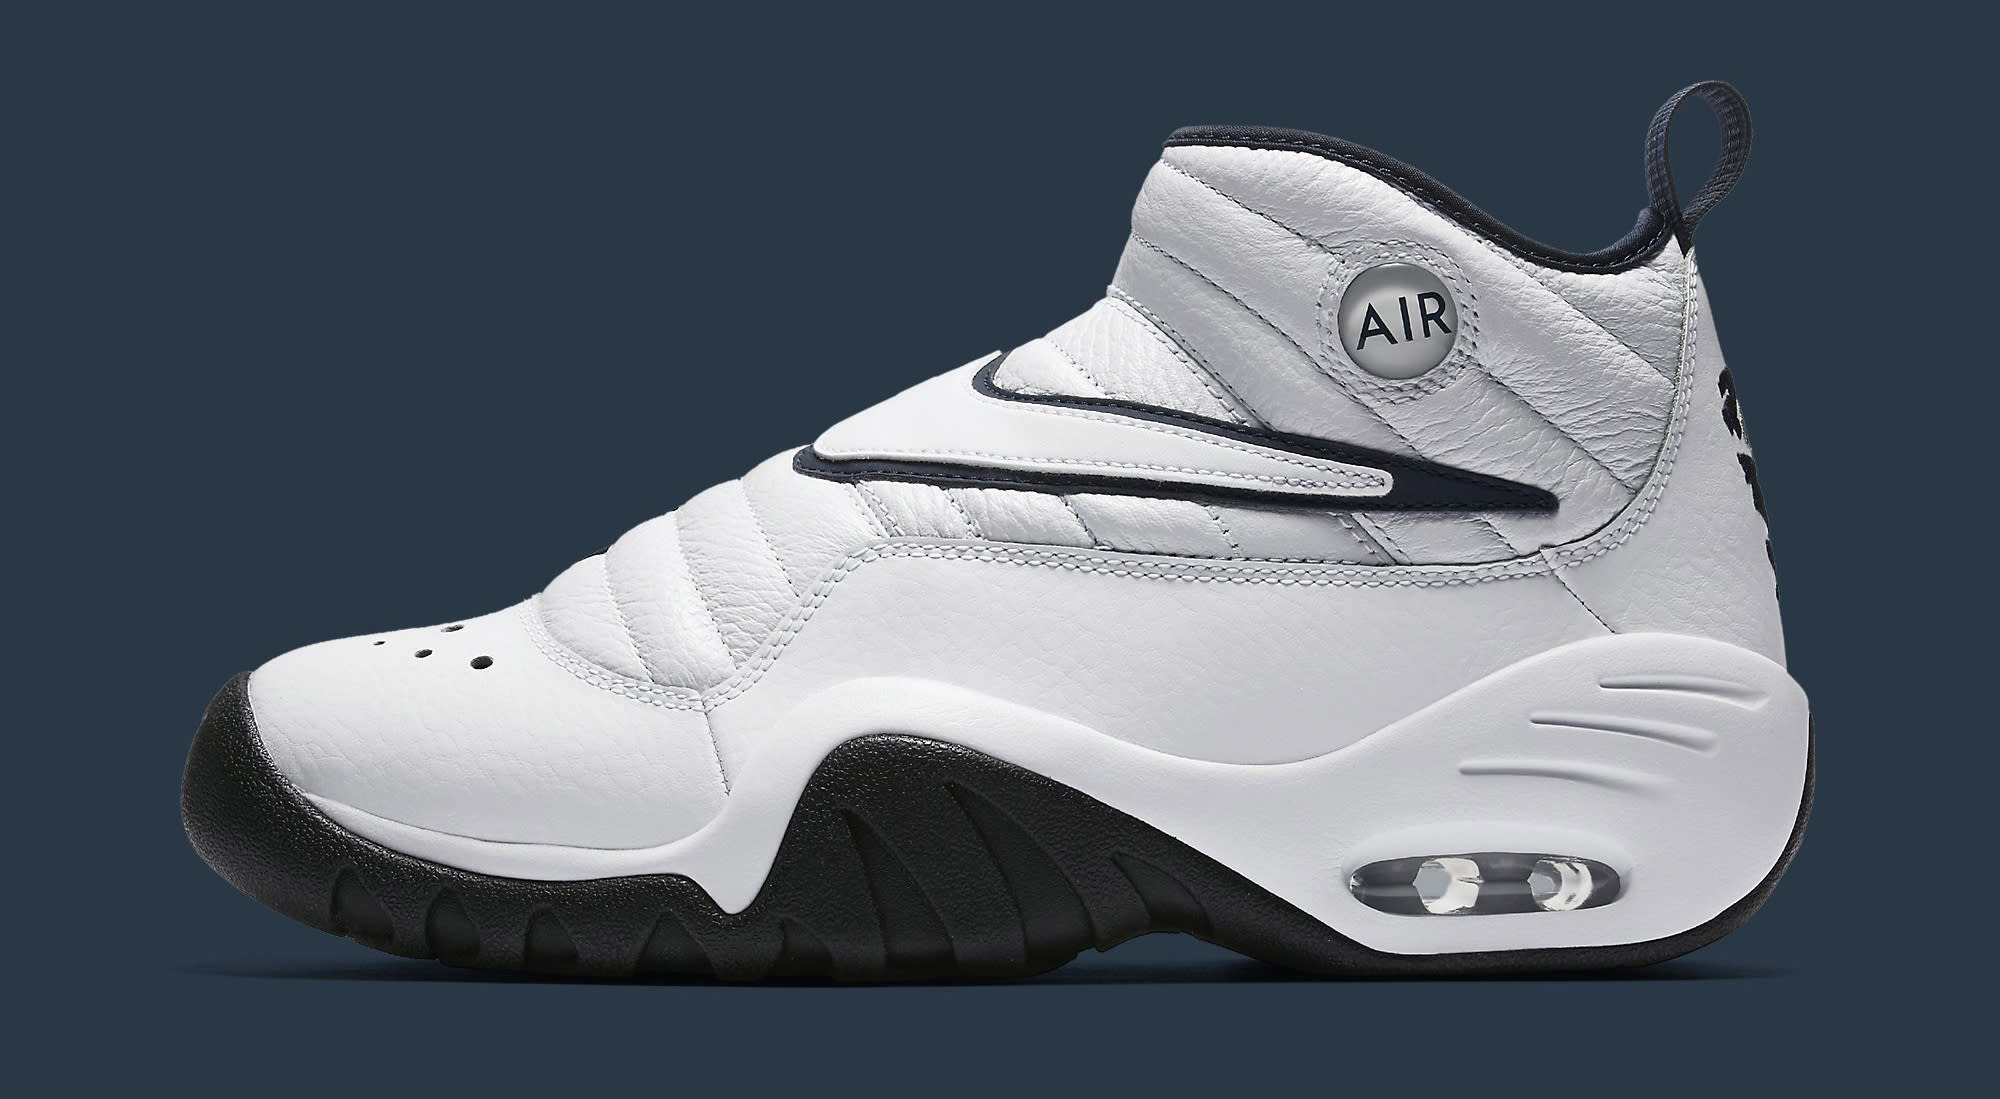 Nike Air Shake Ndestrukt 880869-102 White Navy Profile